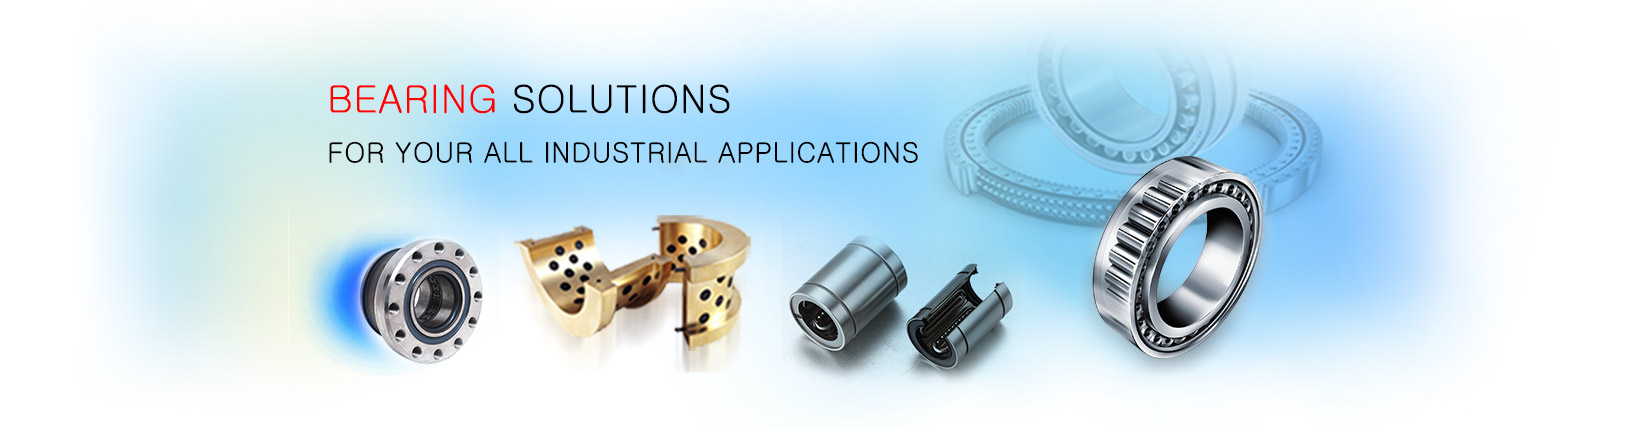 Eurasia Bearings provides bearings for all type of Industrial Applications